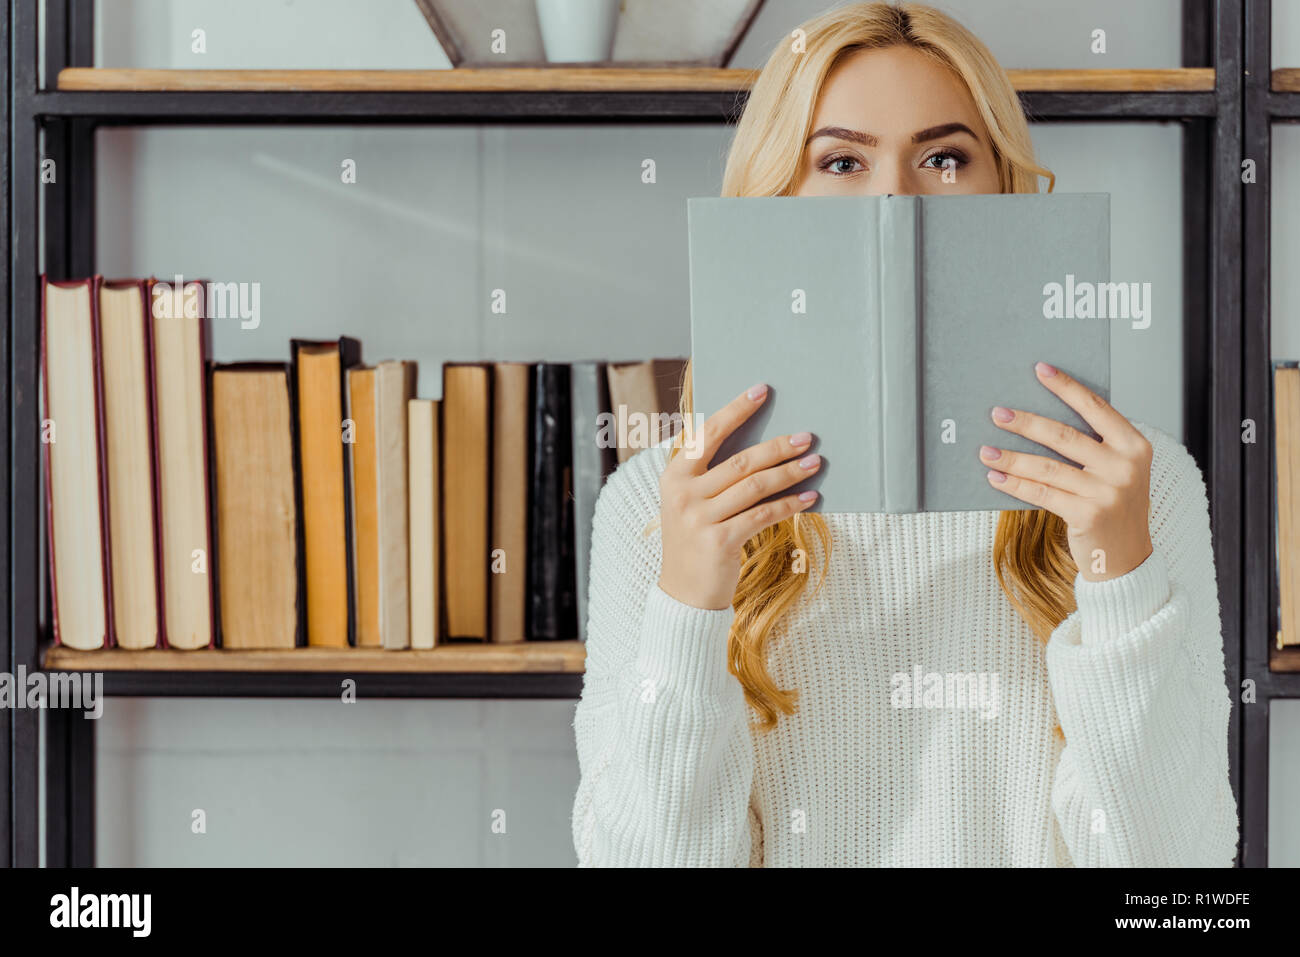 close up of blonde woman hiding face behind book - Stock Image